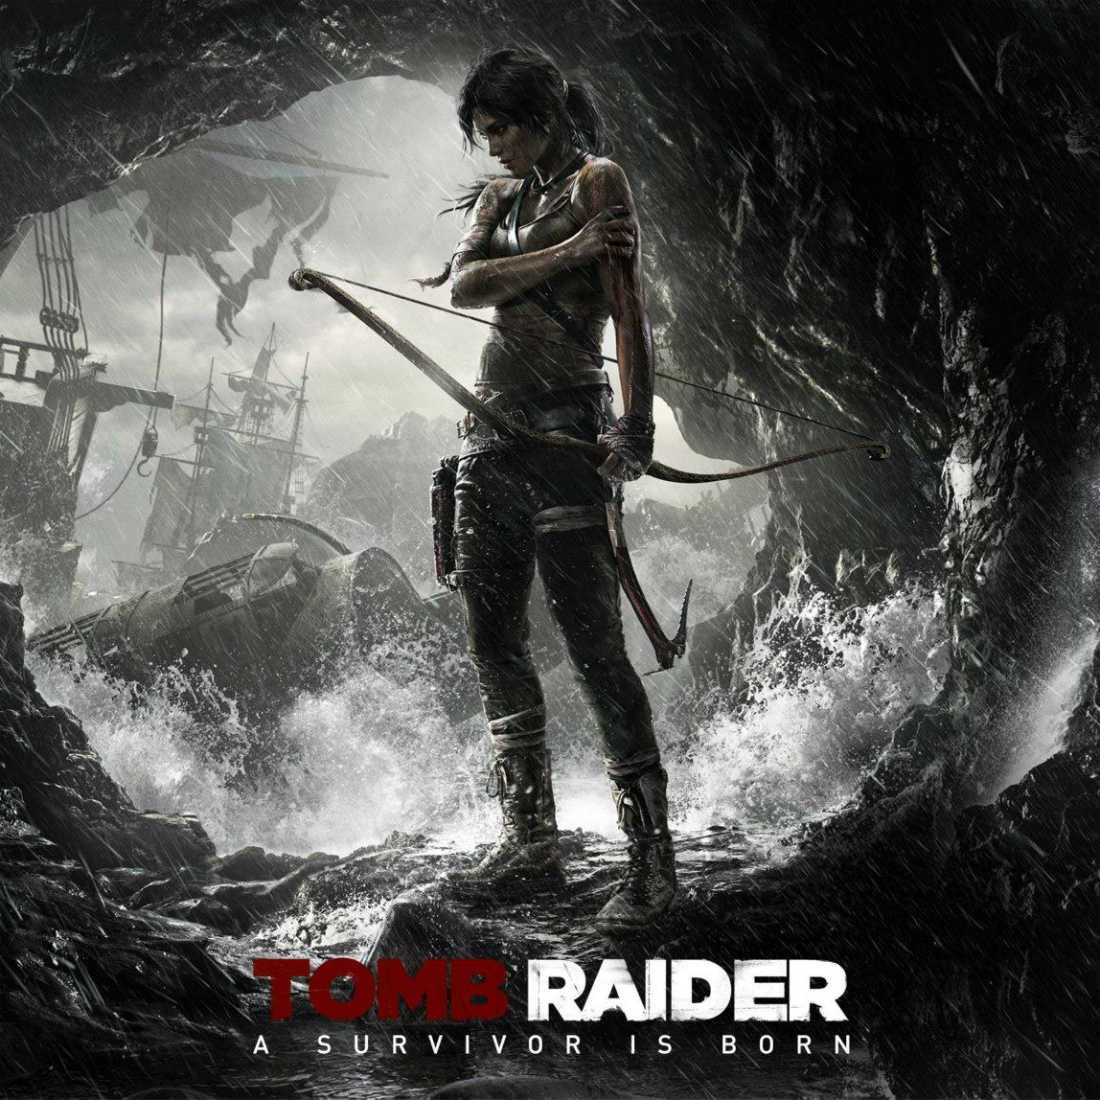 Tomb Raider Video Game Third Person Shooter Action Adventure